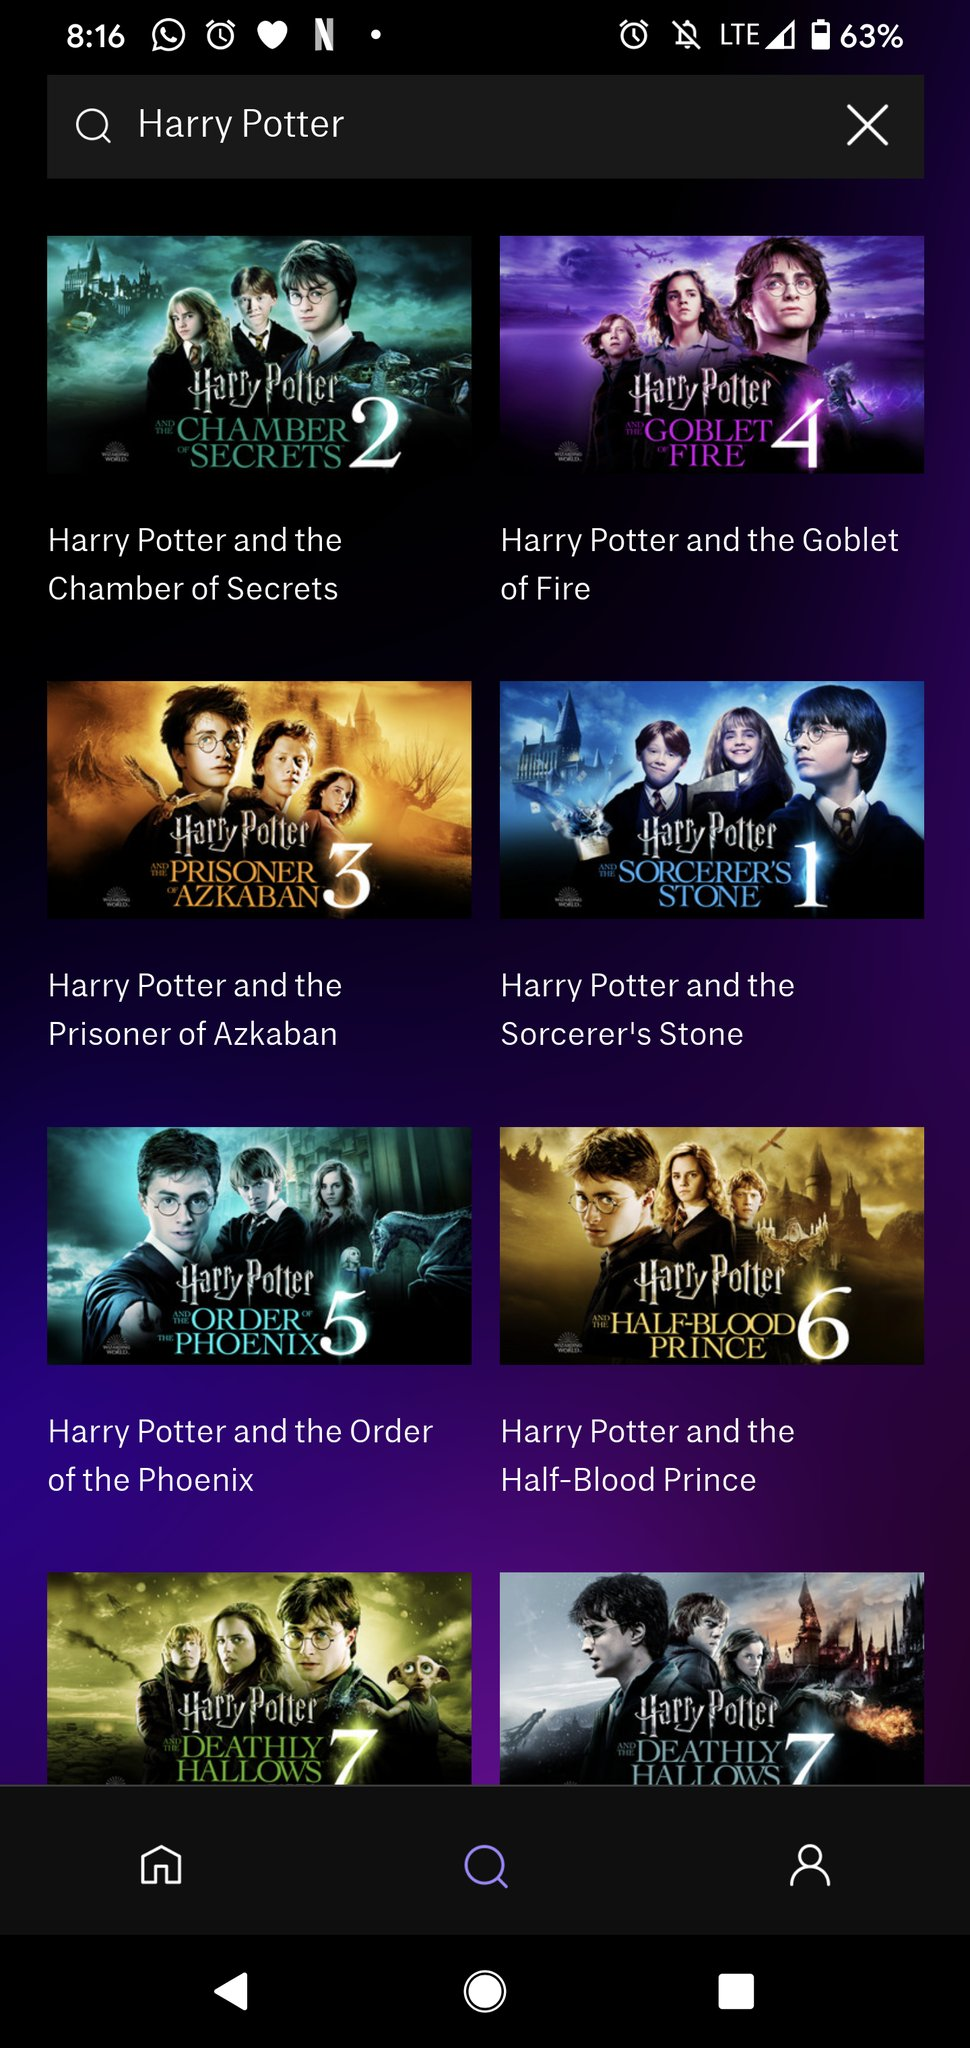 Matthew Ball Auf Twitter Wow Looks Like Hbo Max Did An 11th Hour Deal To Reclaim I E Bought Back The Full Slate Of Harry Potter Movies That Parent Warner Bros Licensed To